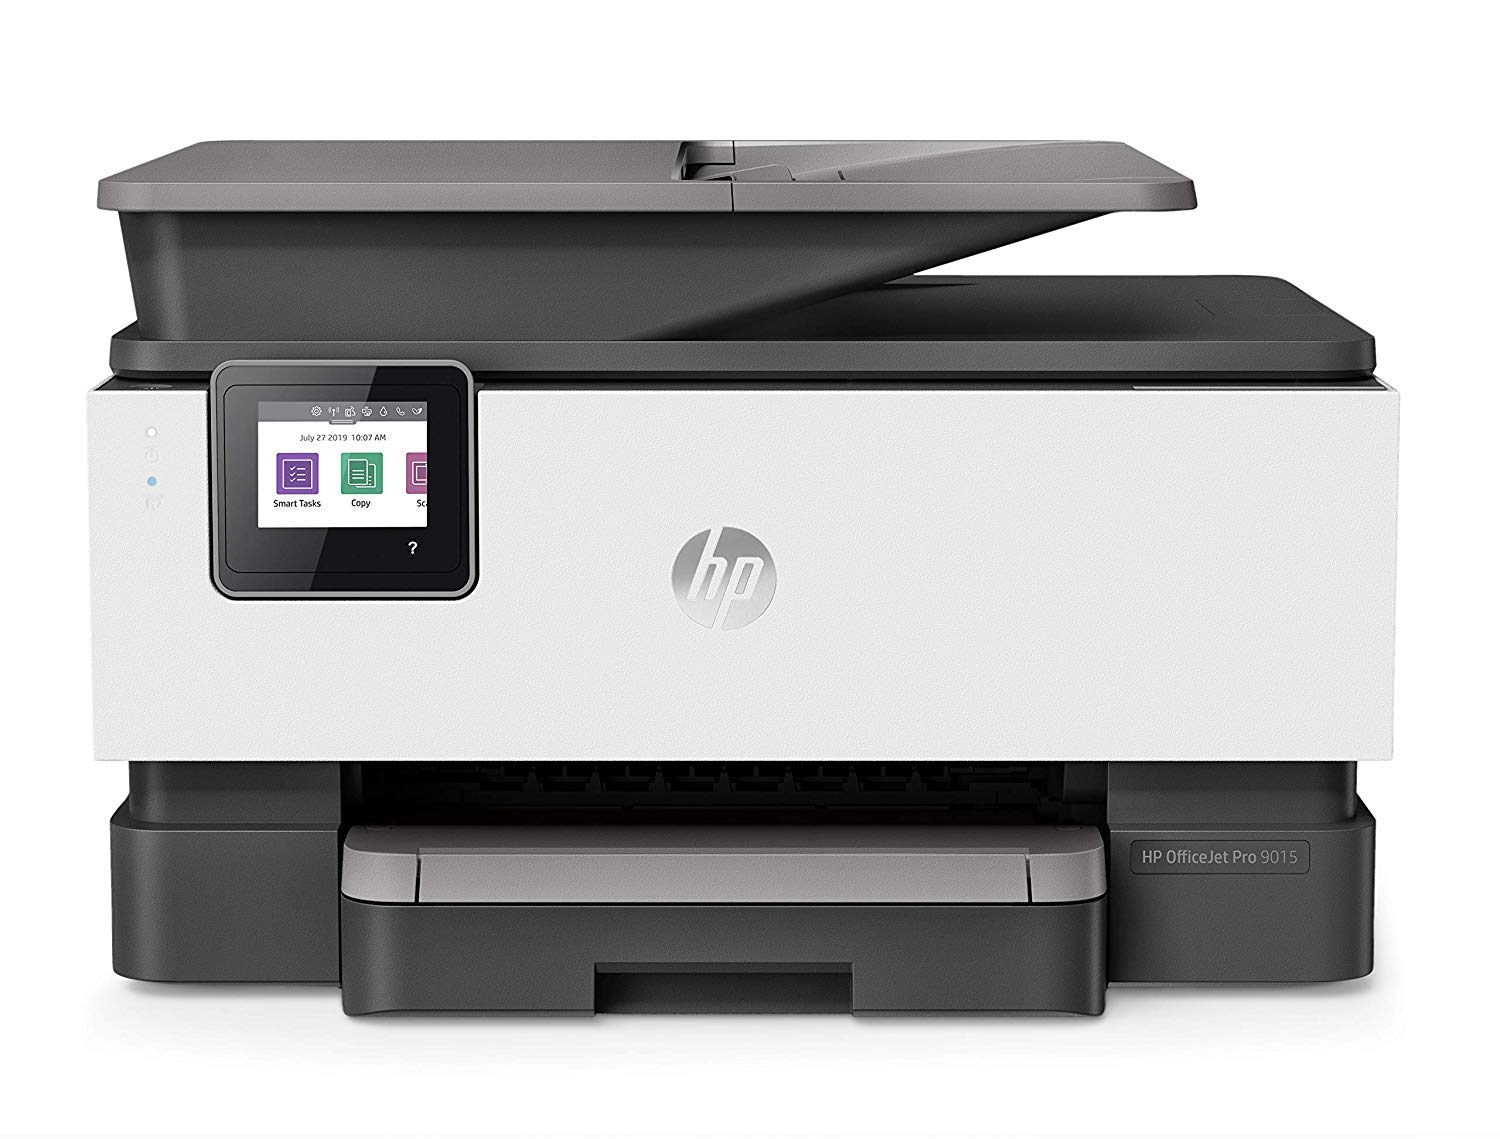 HP OfficeJet 9015 Wireless Productivity